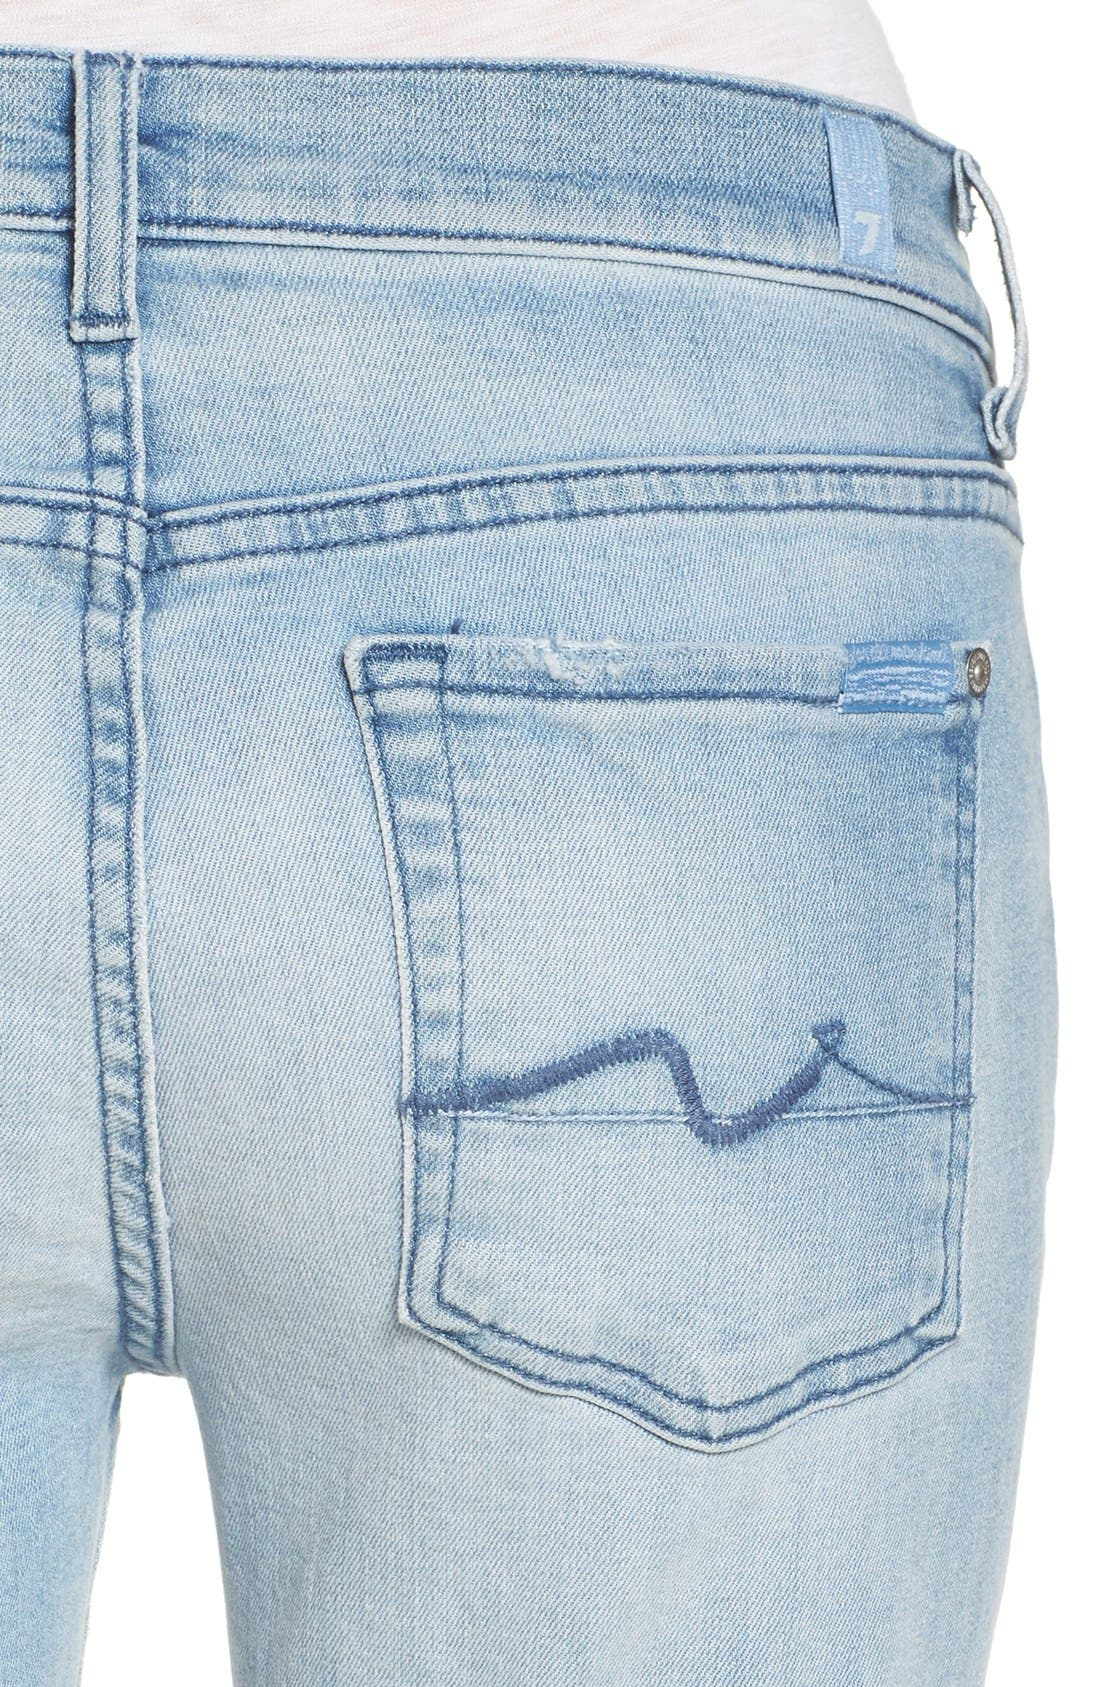 Alternate Image 4  - 7 For All Mankind® 'Josefina' Boyfriend Jeans (Bright Bristol 2)